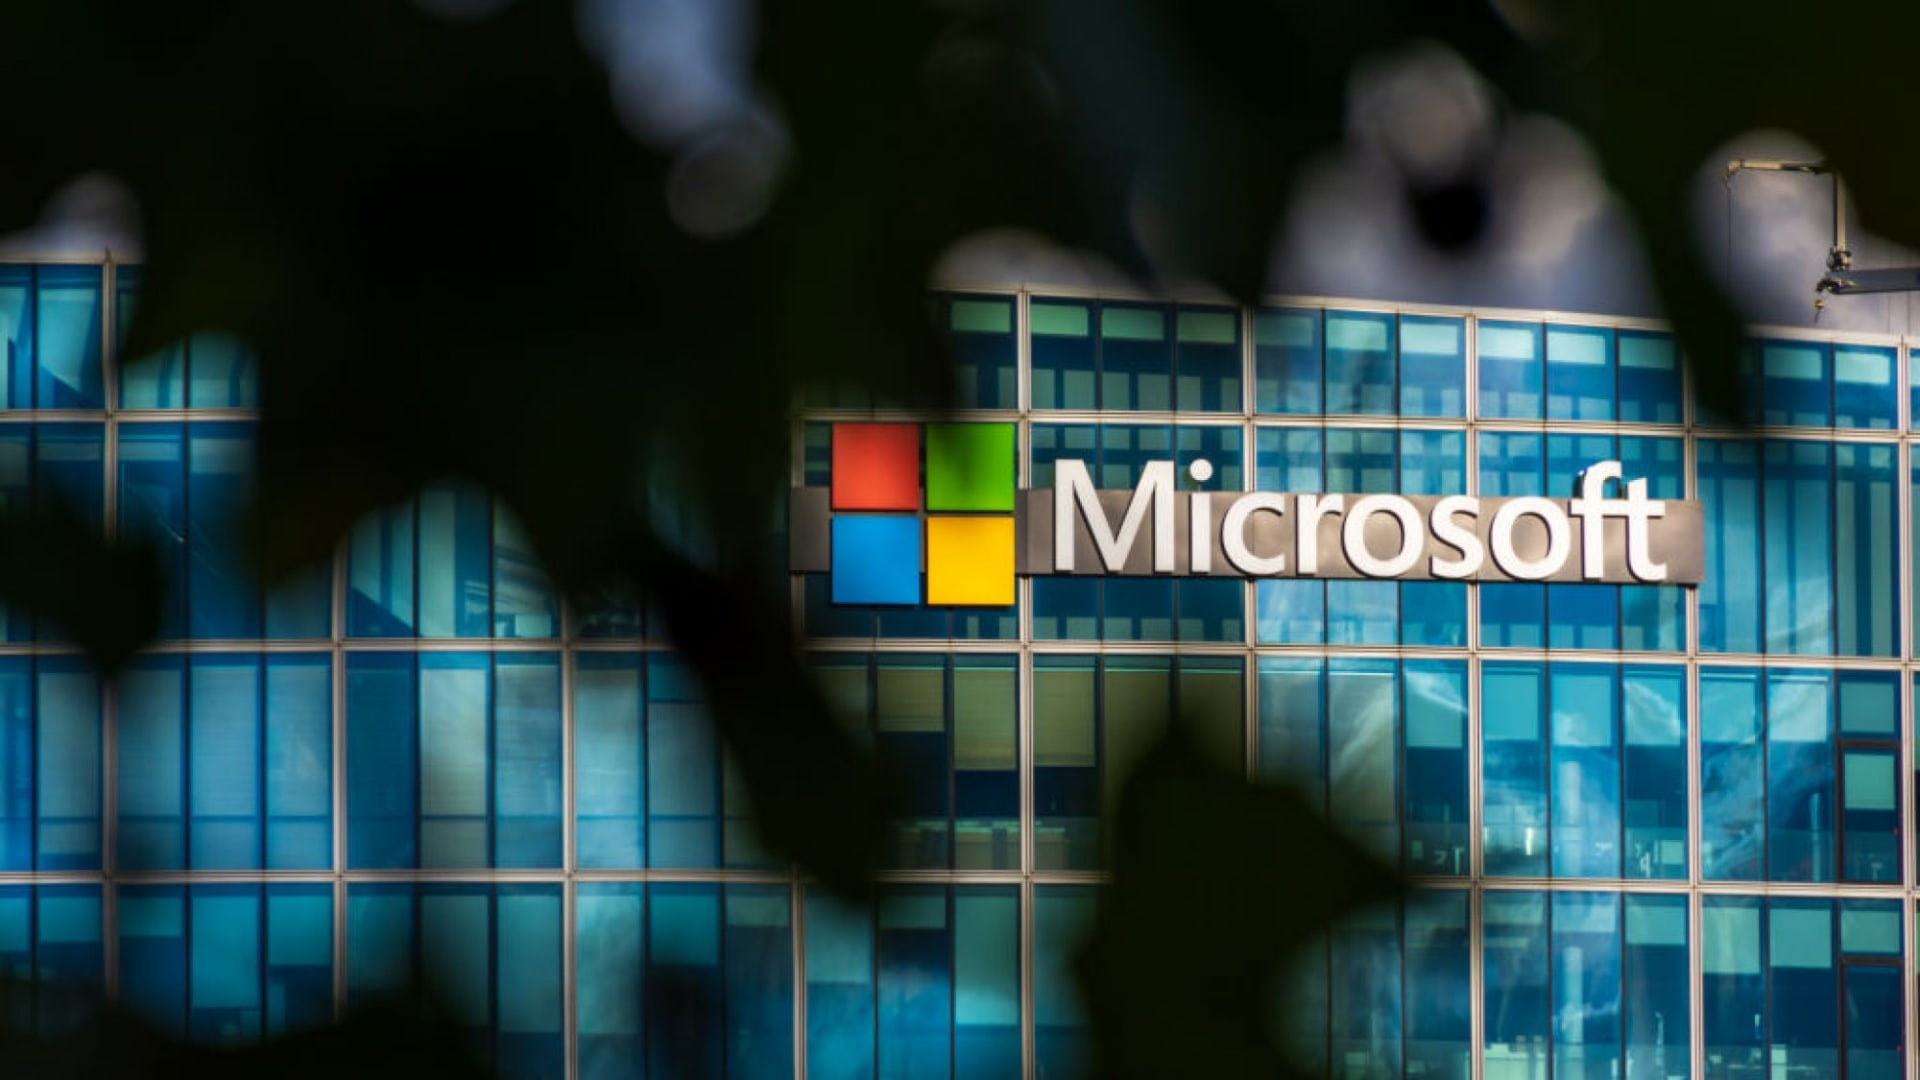 Why Microsoft Just Spent $20 Billion on a Company You've Never Heard Of